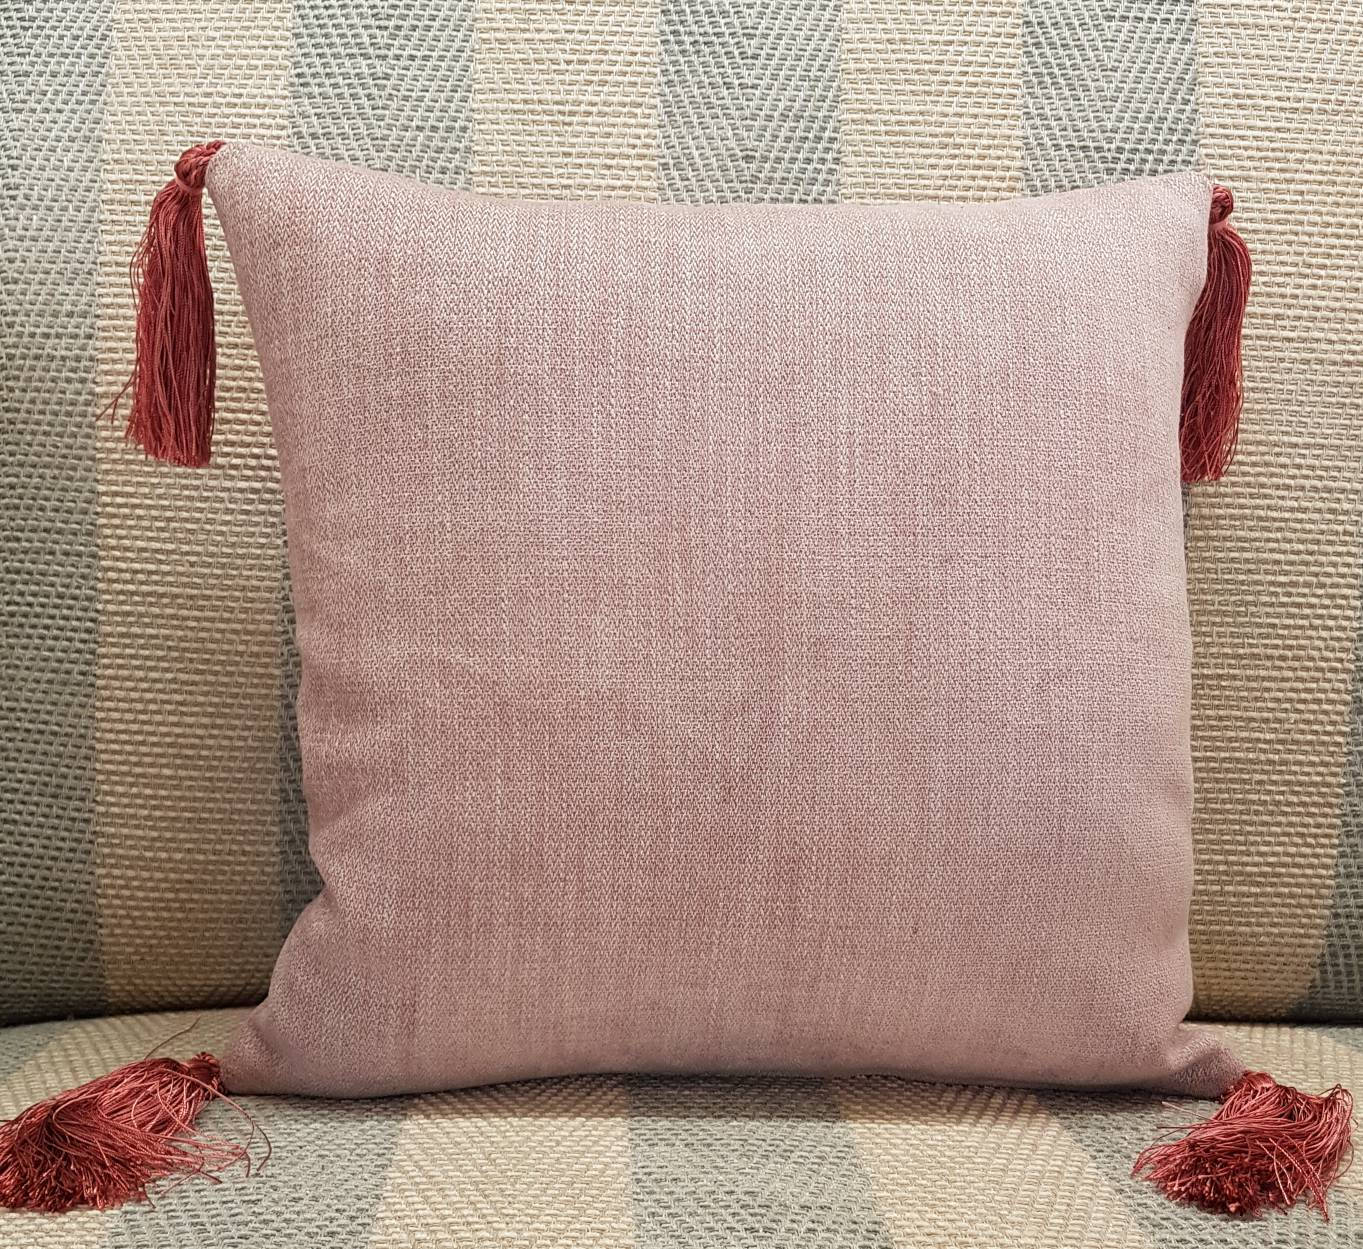 Handmade Cushion With Tassels